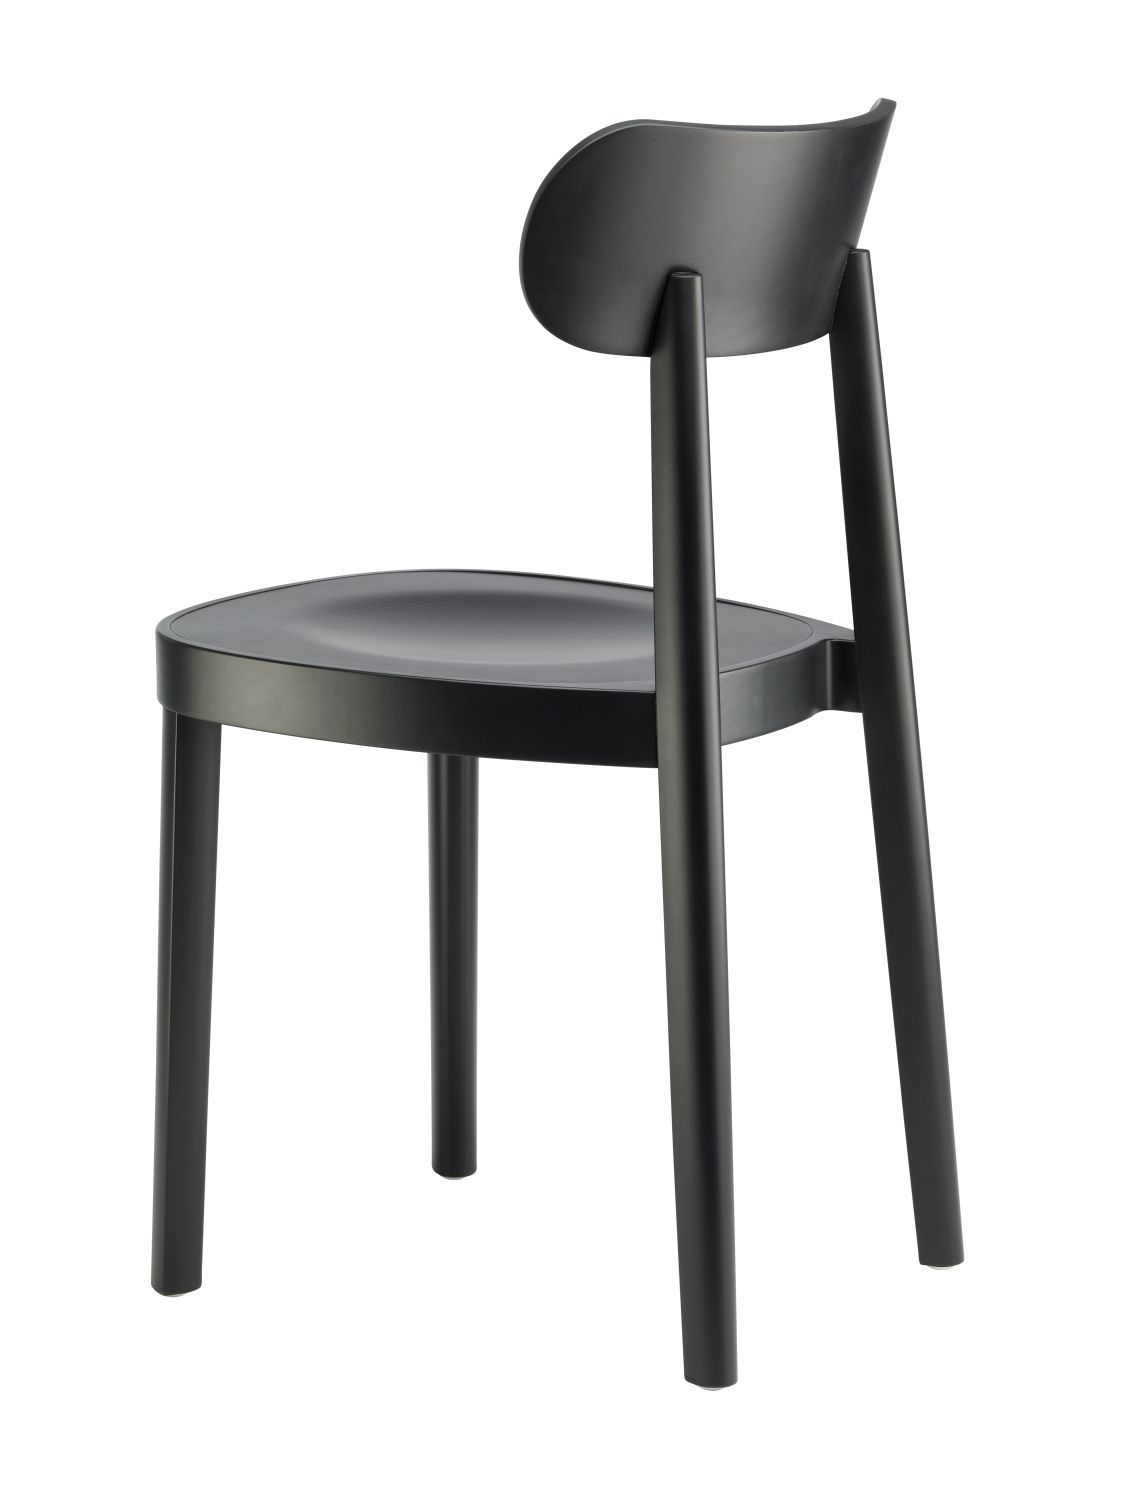 Thonet 118 M Stuhl Schwarz Tp 29 Indoor Products In